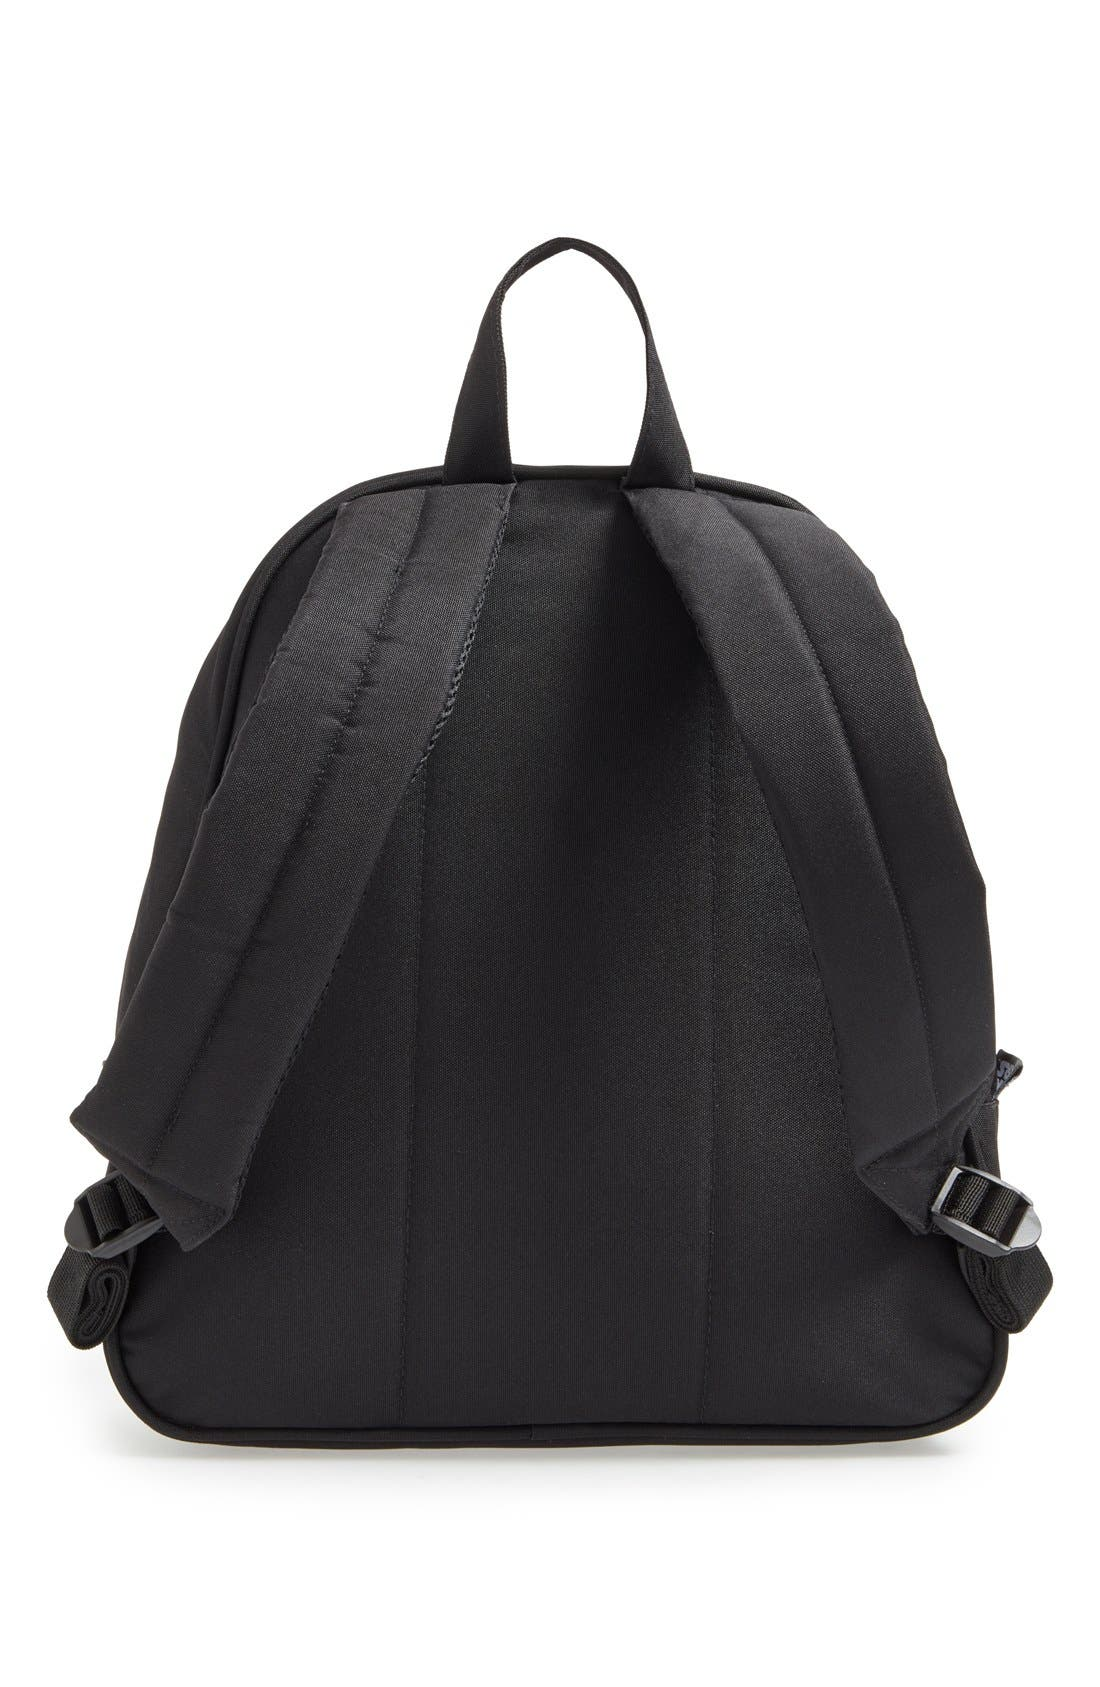 'Star Wars<sup>™</sup> - Darth Vader' Backpack,                             Alternate thumbnail 2, color,                             Black